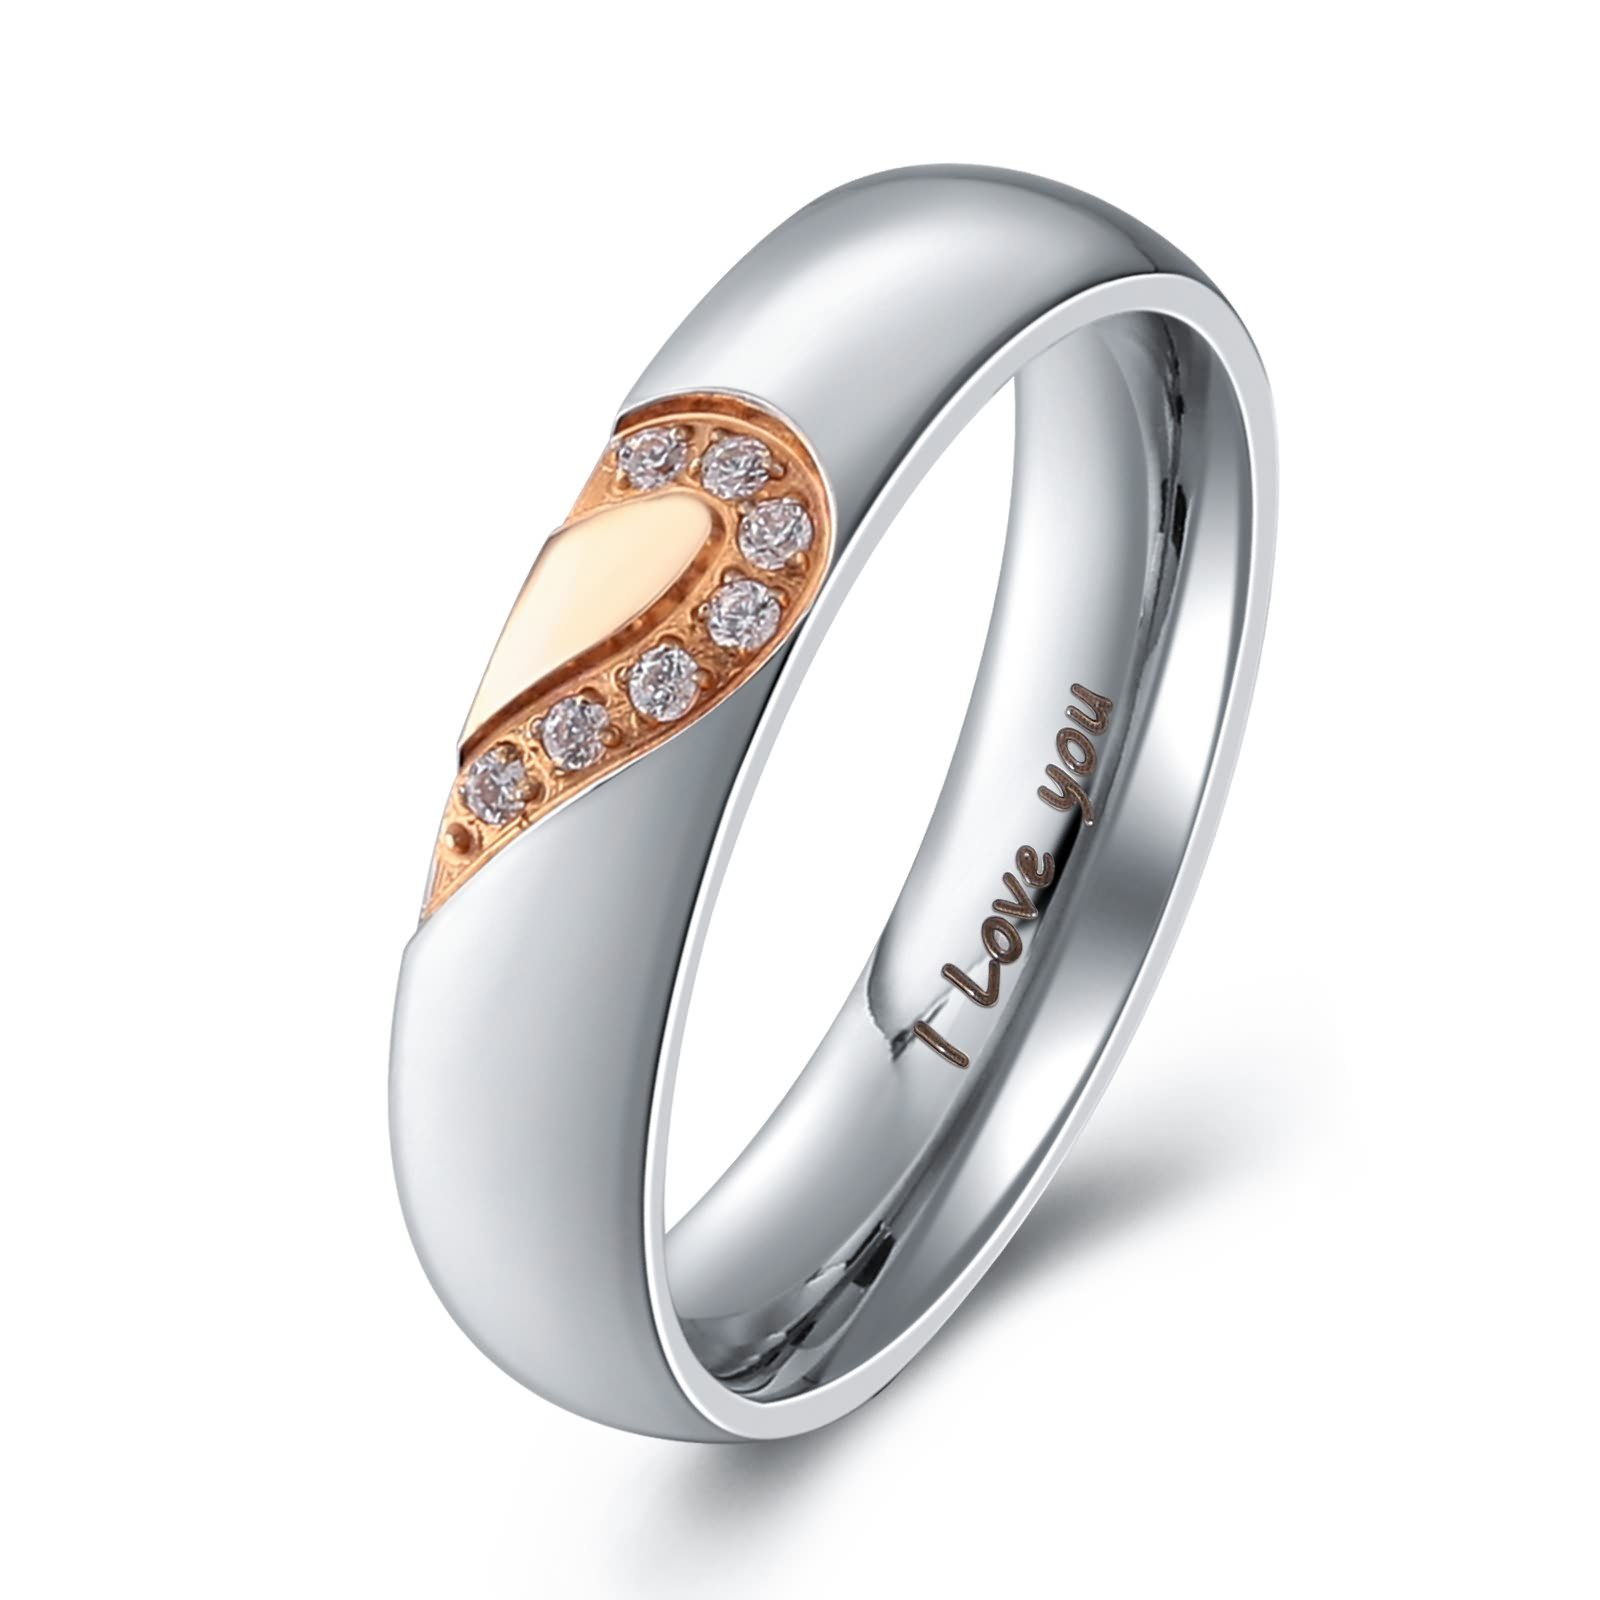 Aienid Rings Men and Women Couple Rings Heart I Love You Stainless Steel Wedding Bands for Womens Size 7 by Aienid (Image #2)